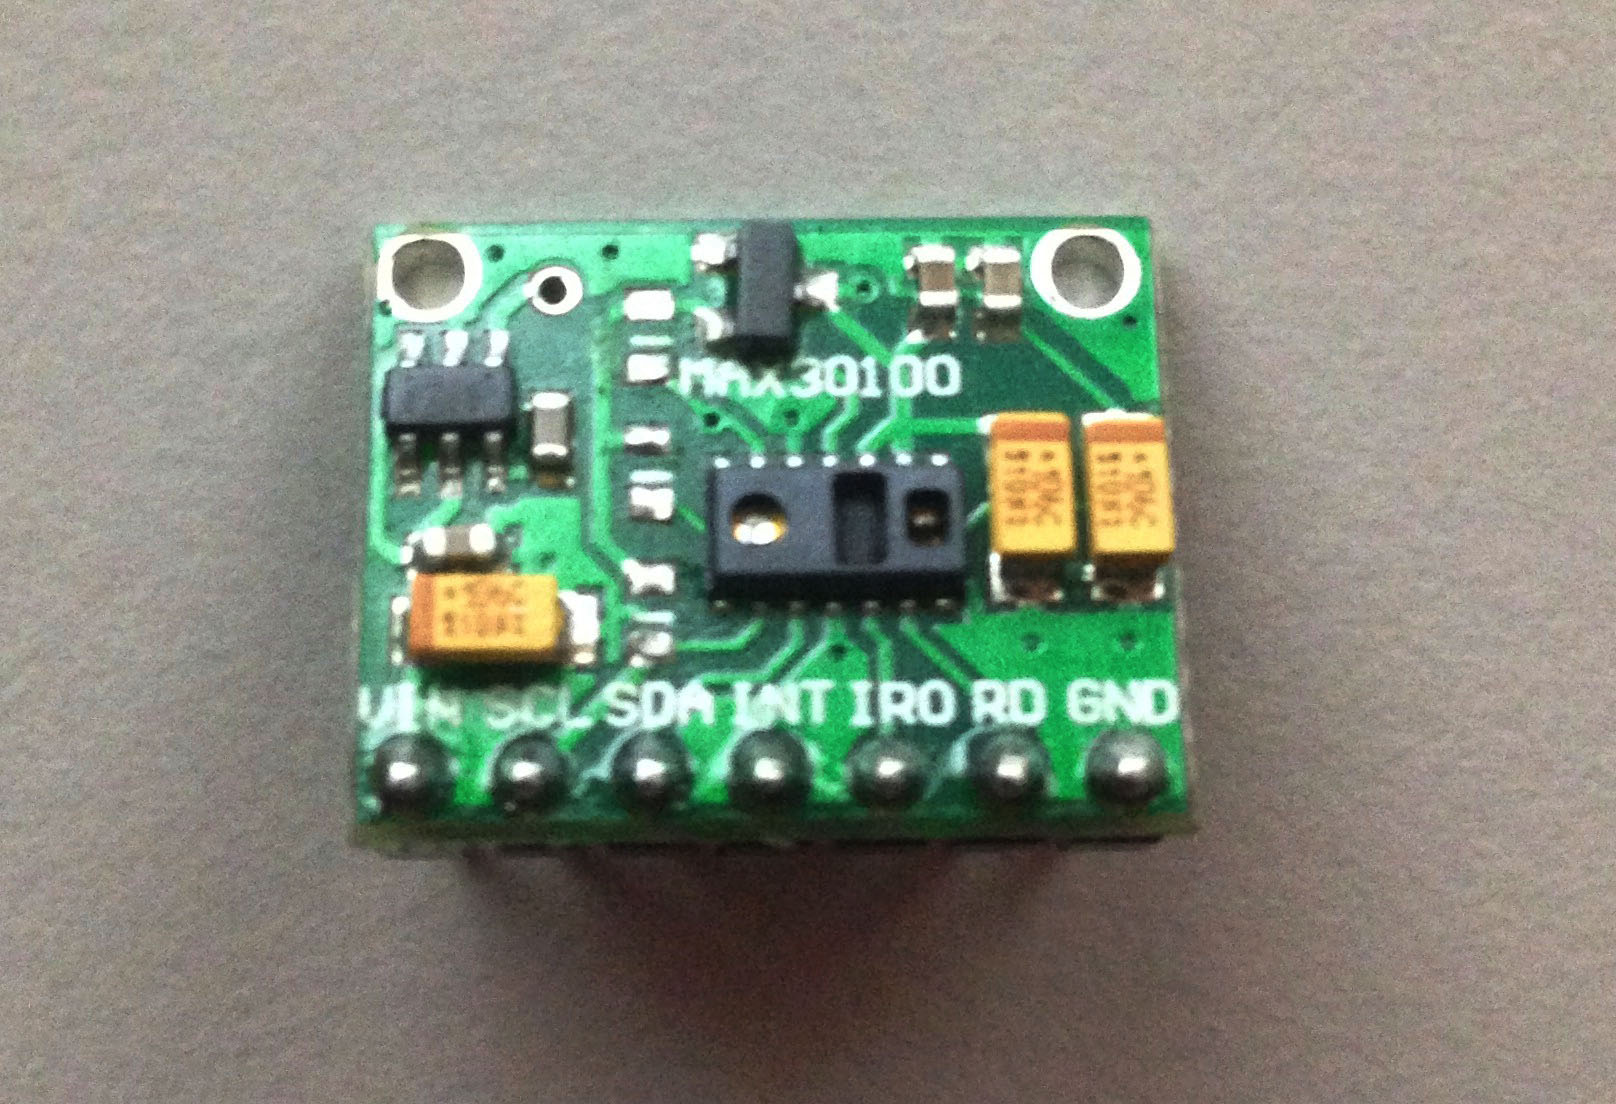 How To Use The Max30100 As Arduino Heart Rate Sensor Teach Me With Processor Circuit Homemade Projects Resistors Removed